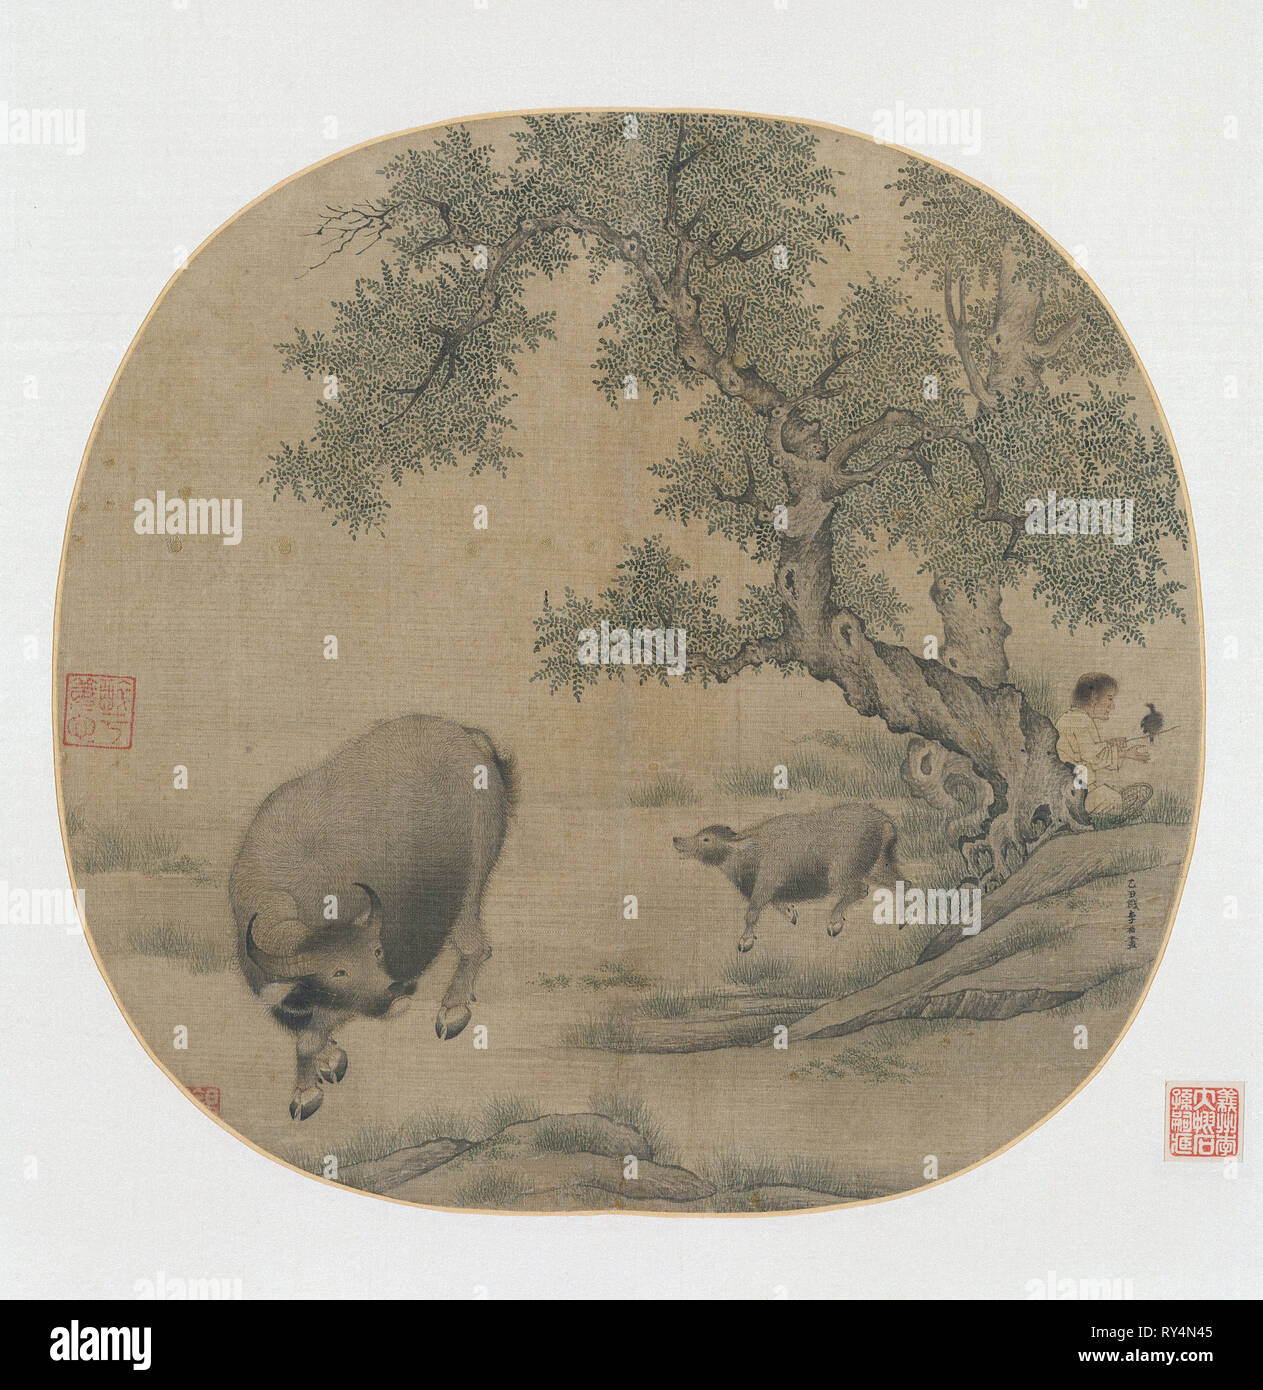 Man, Buffalo, and Calf, 1205 or 1265. Li You (Chinese, 1200s). Album leaf; ink and color on silk; image: 25 x 26.7 cm (9 13/16 x 10 1/2 in.); with mat: 33.3 x 40.5 cm (13 1/8 x 15 15/16 in - Stock Image